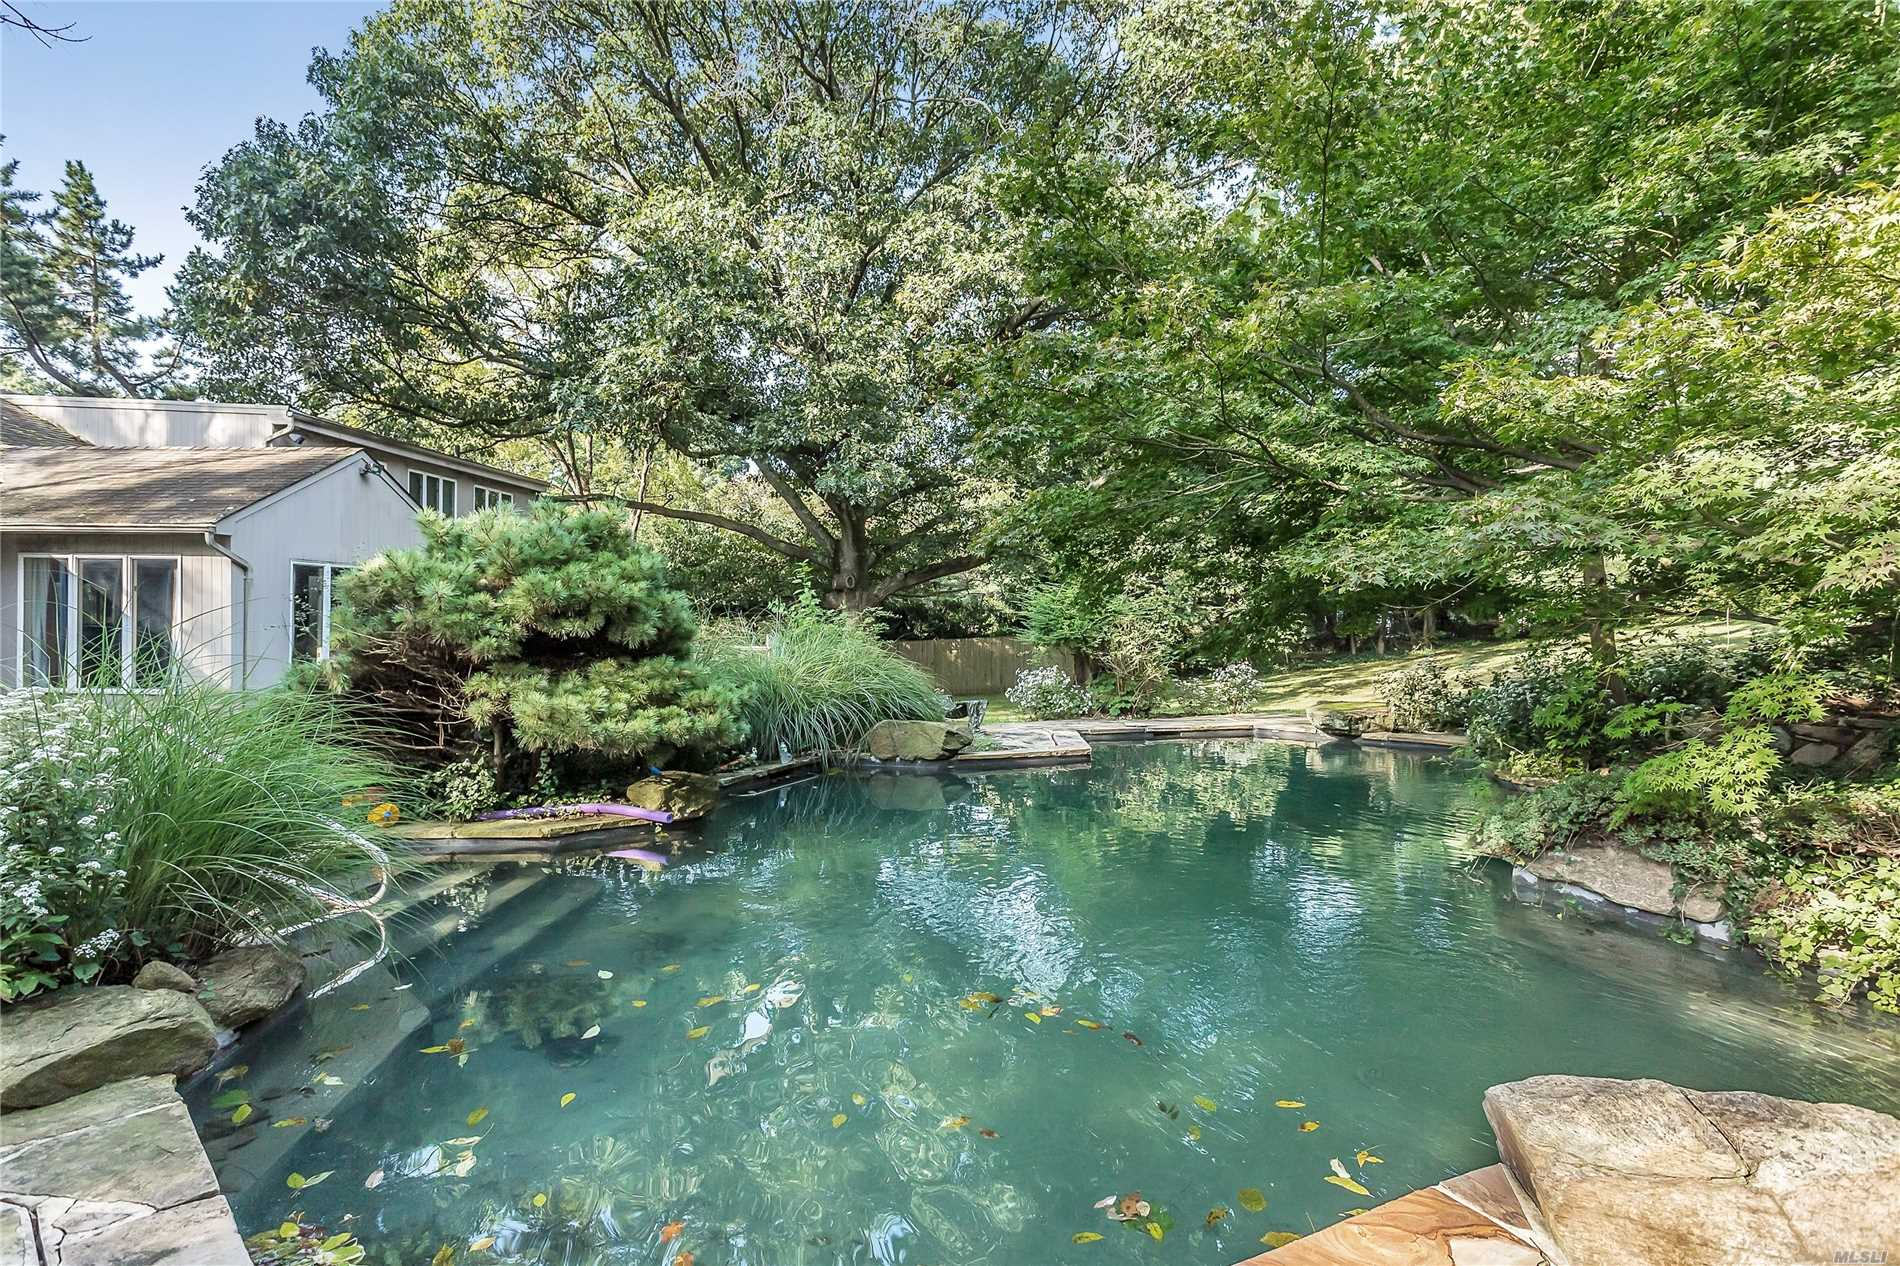 Roslyn Harbor. 1 Acre Plus With A Pool. 5 Bedrooms, 3.54 Baths Ranch On Prime Cul-De-Sac.